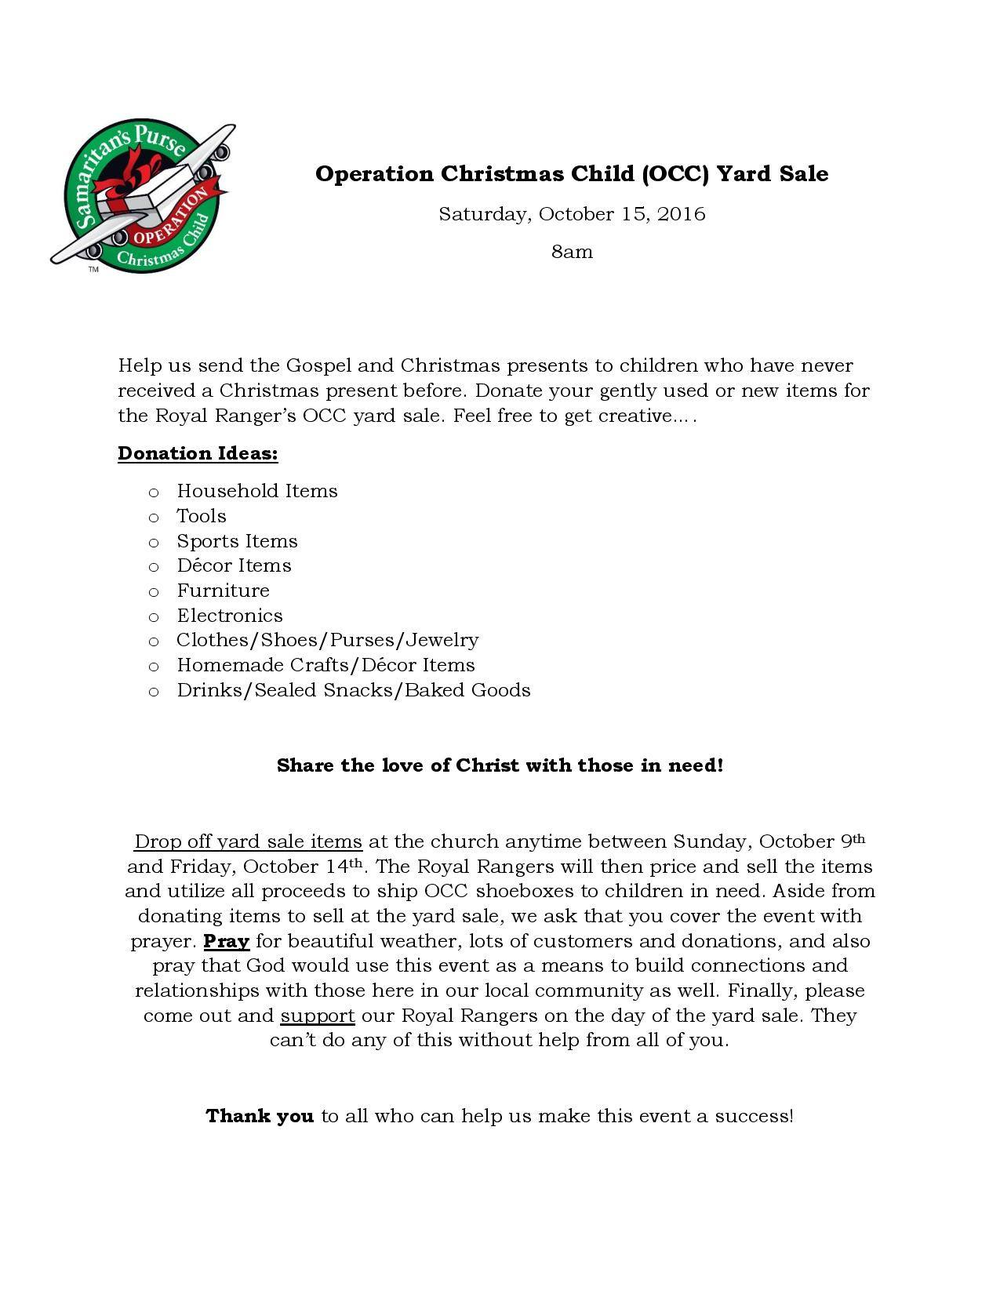 Operation Christmas Child — Marksboro Community Church